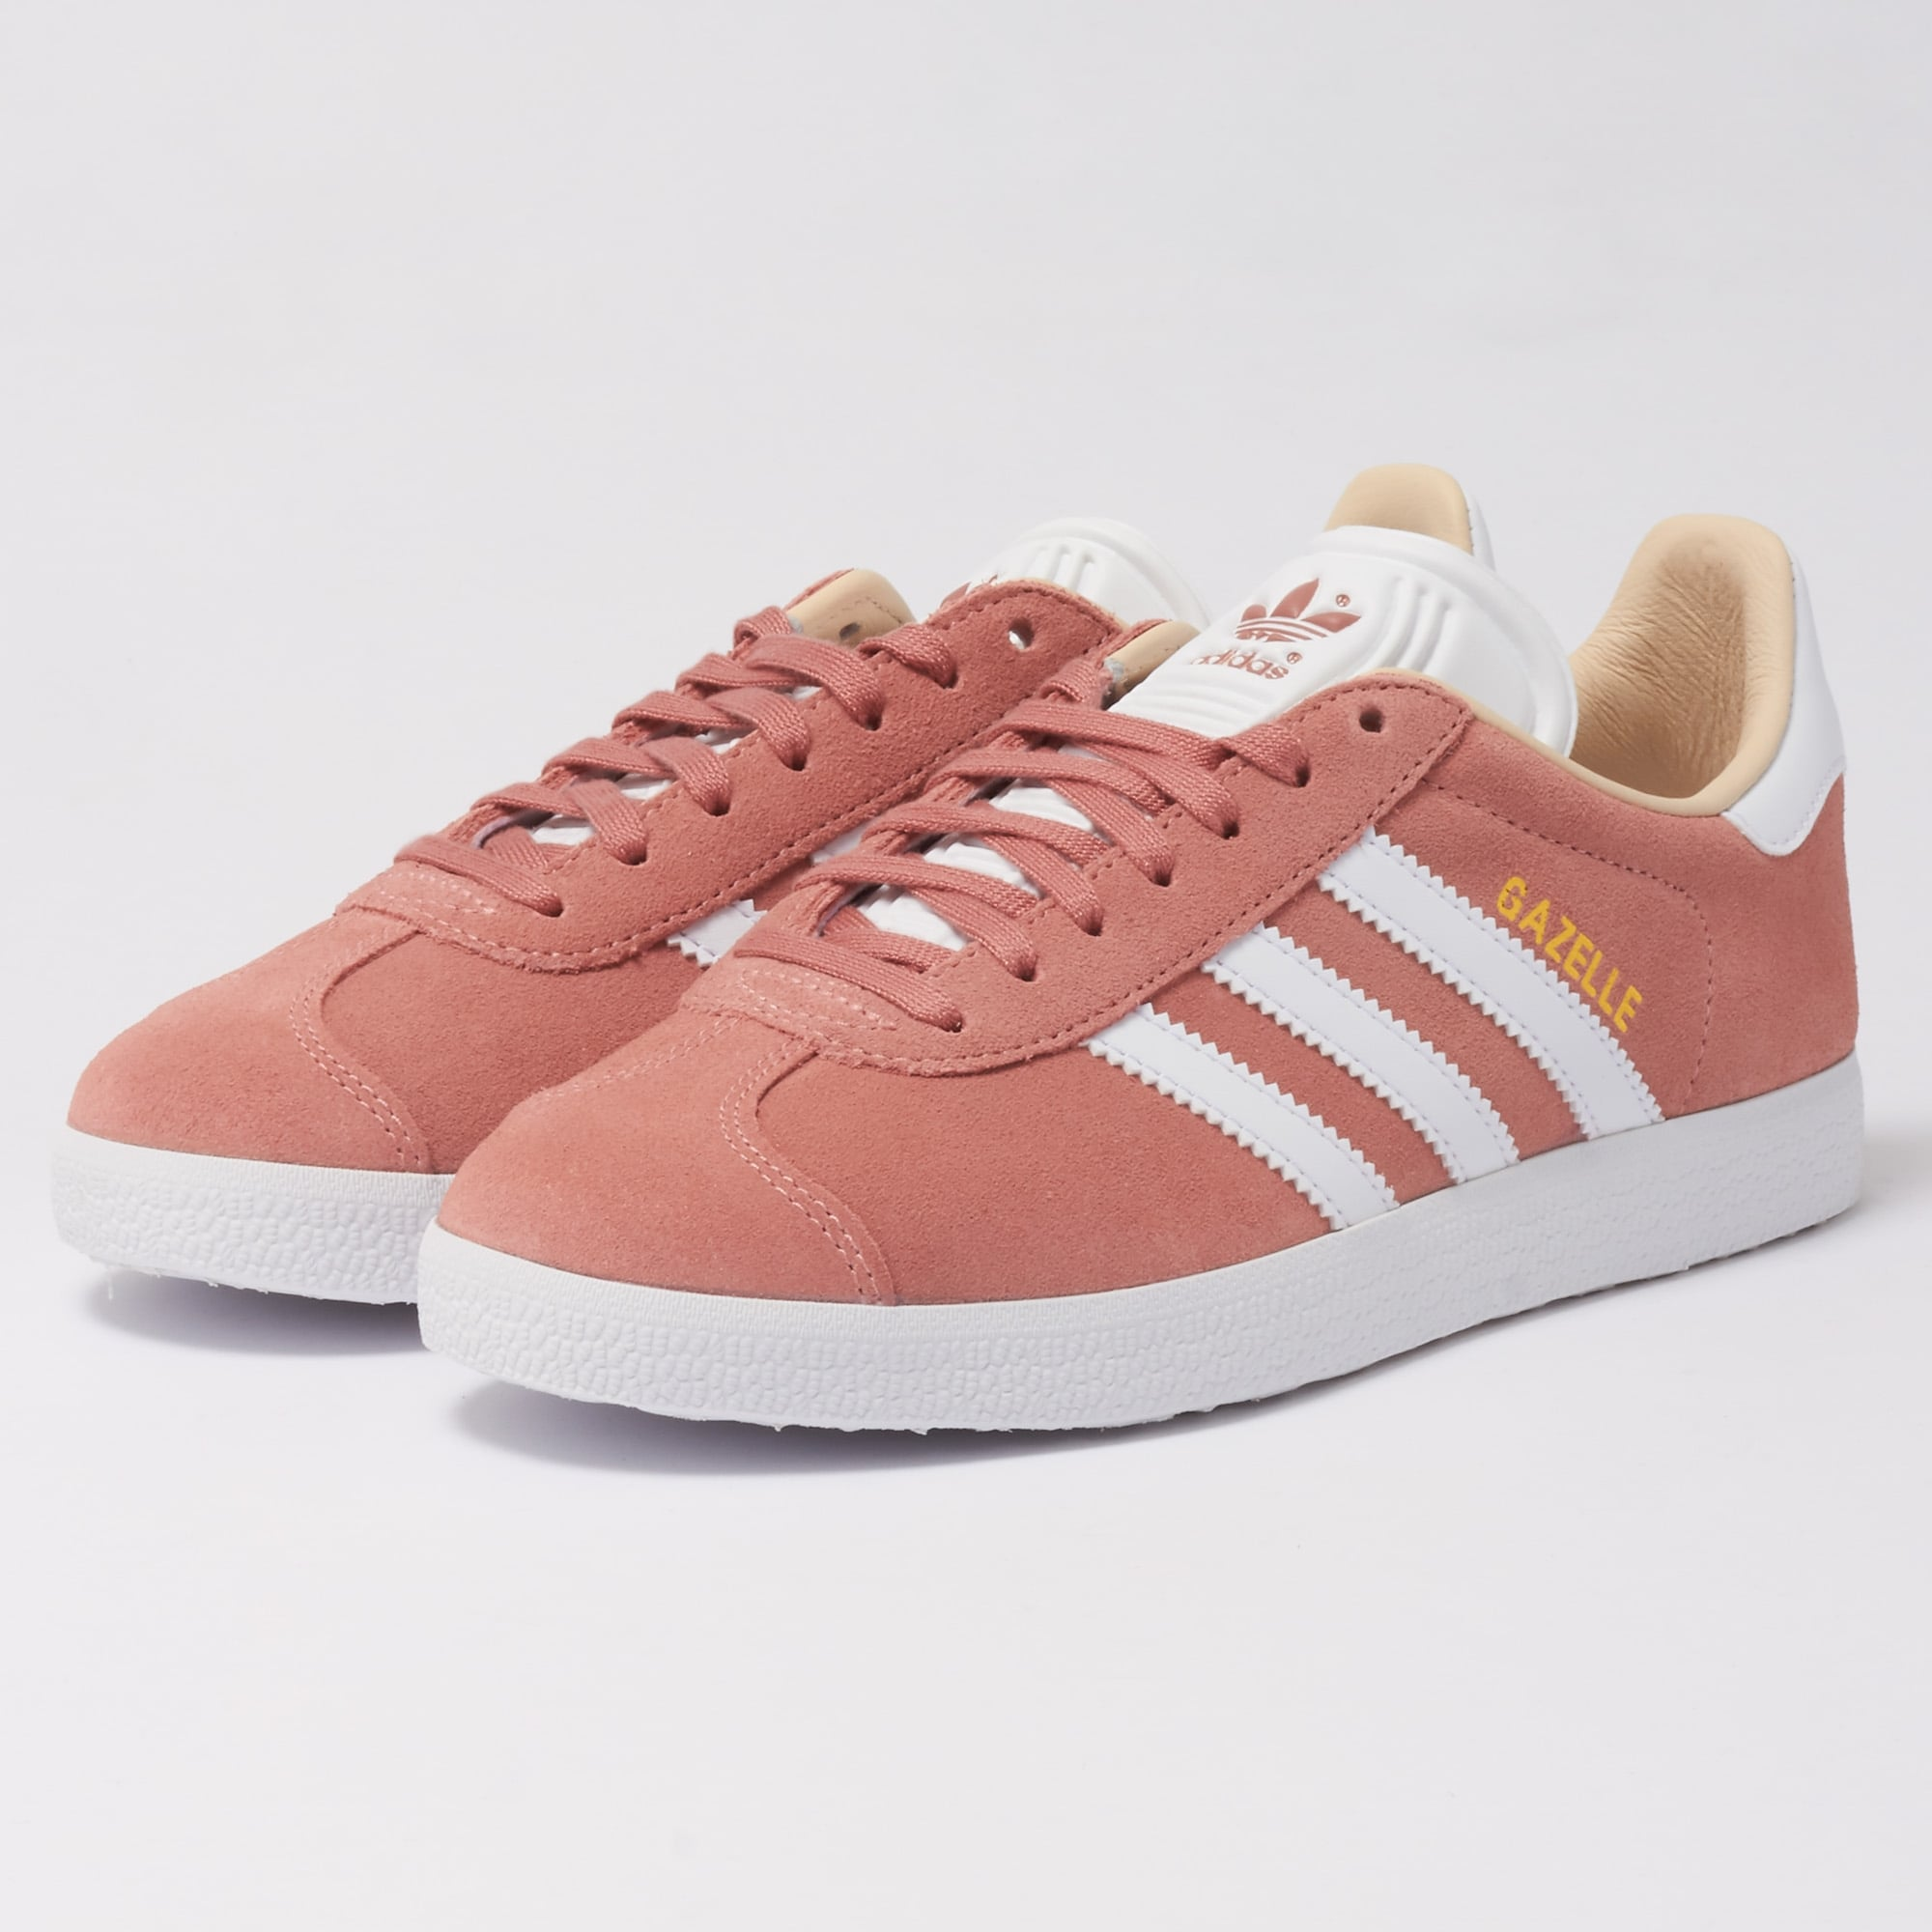 ... Adidas Originals Womens Wmns Gazelle Sneakers. Tap image to zoom.  Gazelle Trainers - Ash Pearl · Gazelle Trainers - Ash Pearl f8516a888